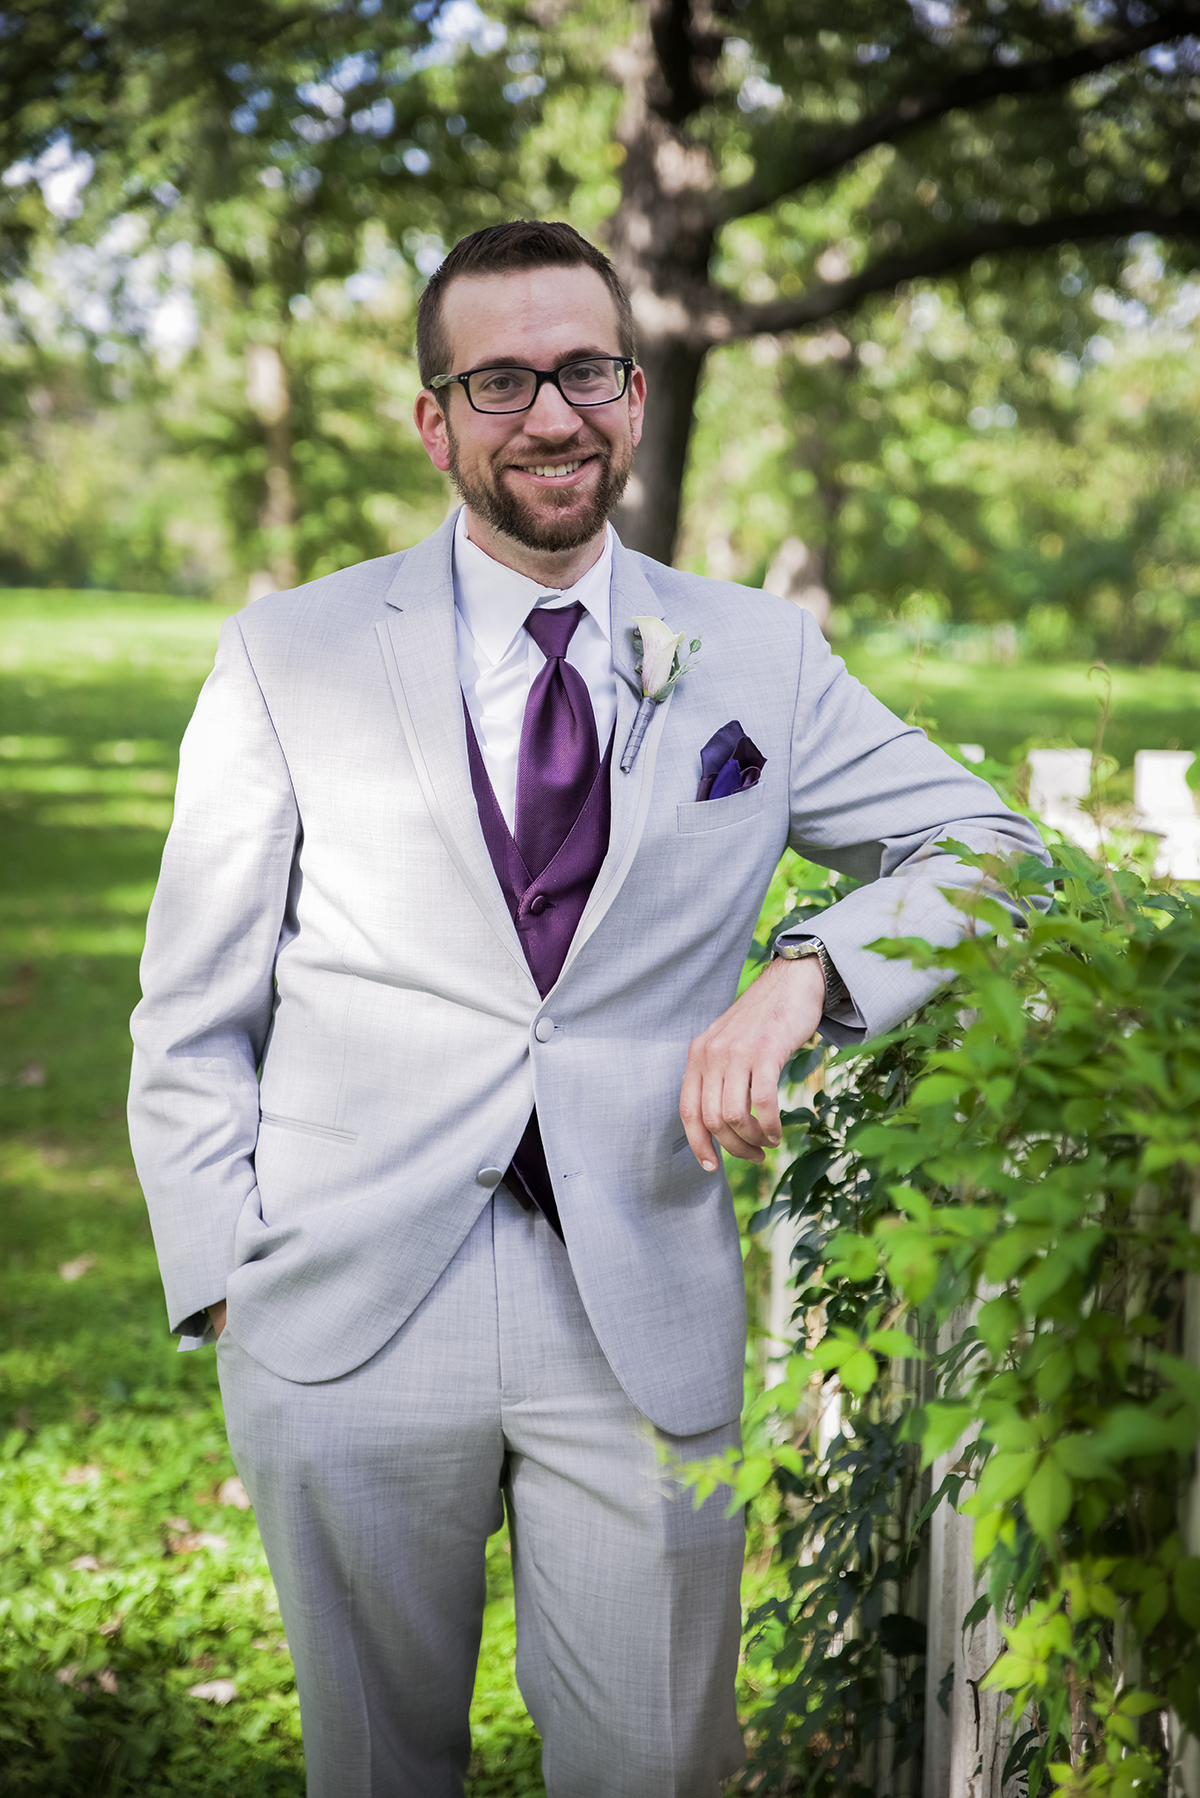 2016_09_16_Dunham-Keim-Wedding_0269.jpg